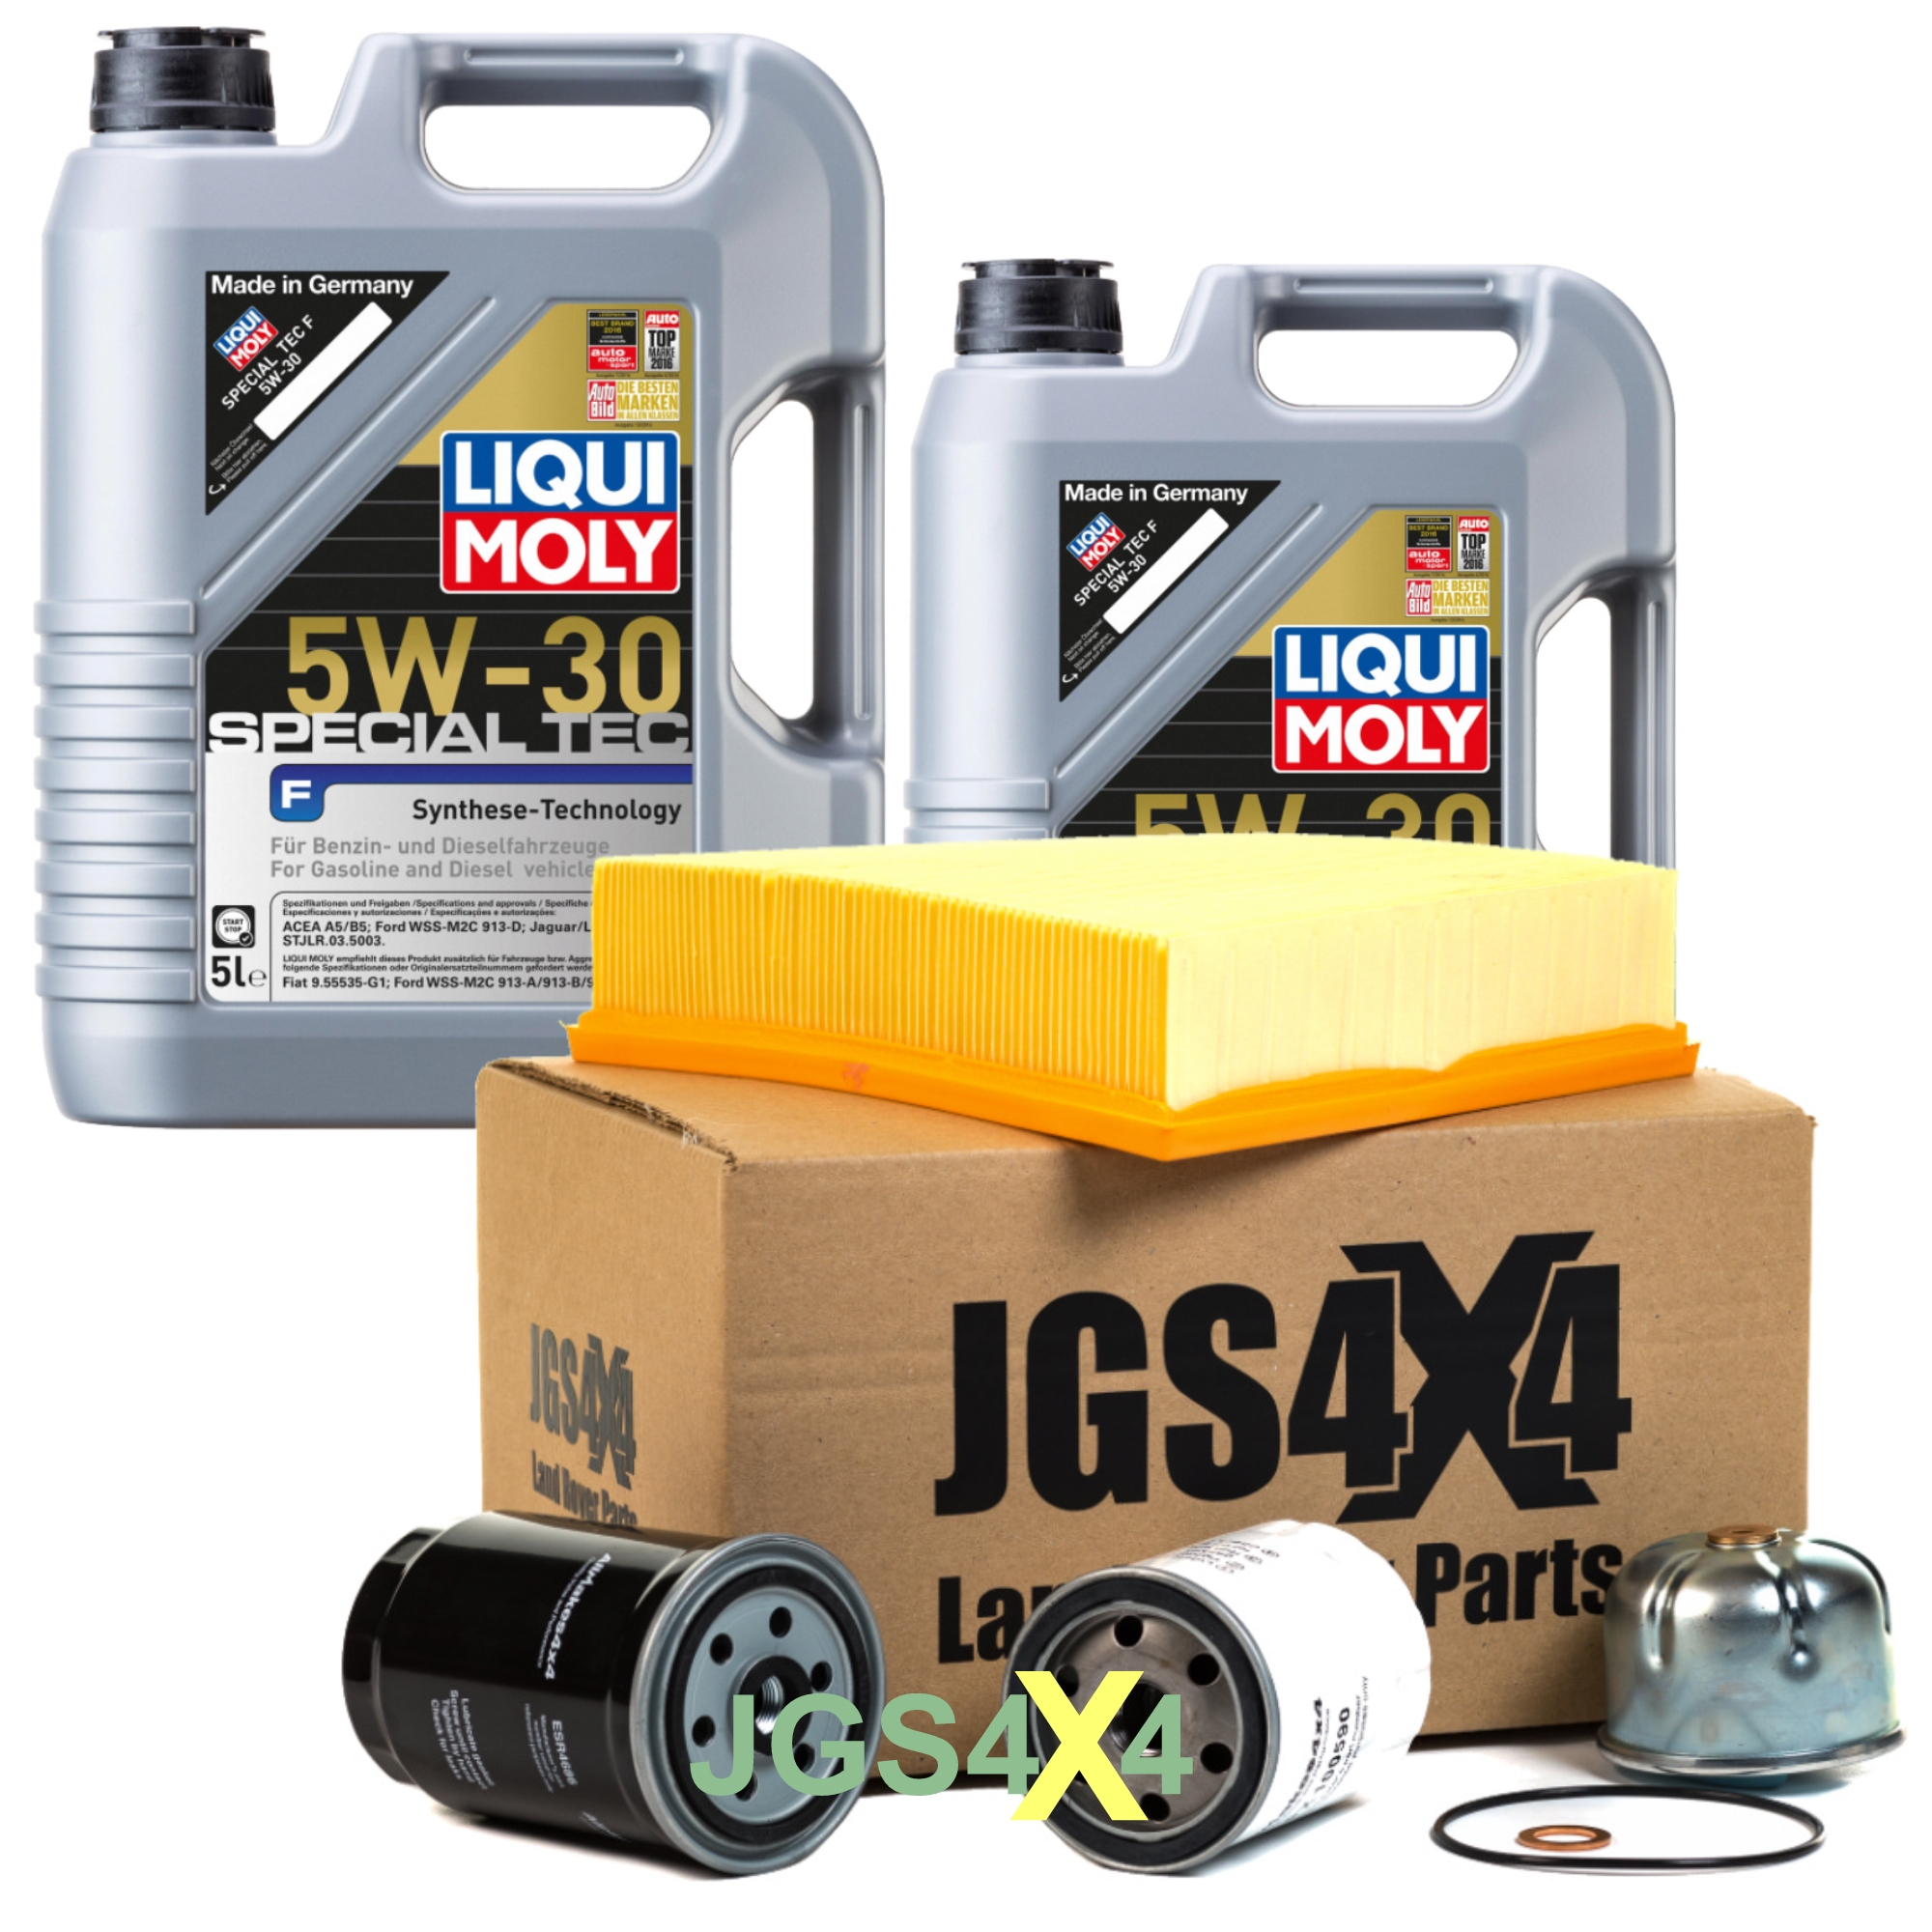 Land Rover TD5 Engine Service Kit with Liqui Moly 5W30 Engine Oil.